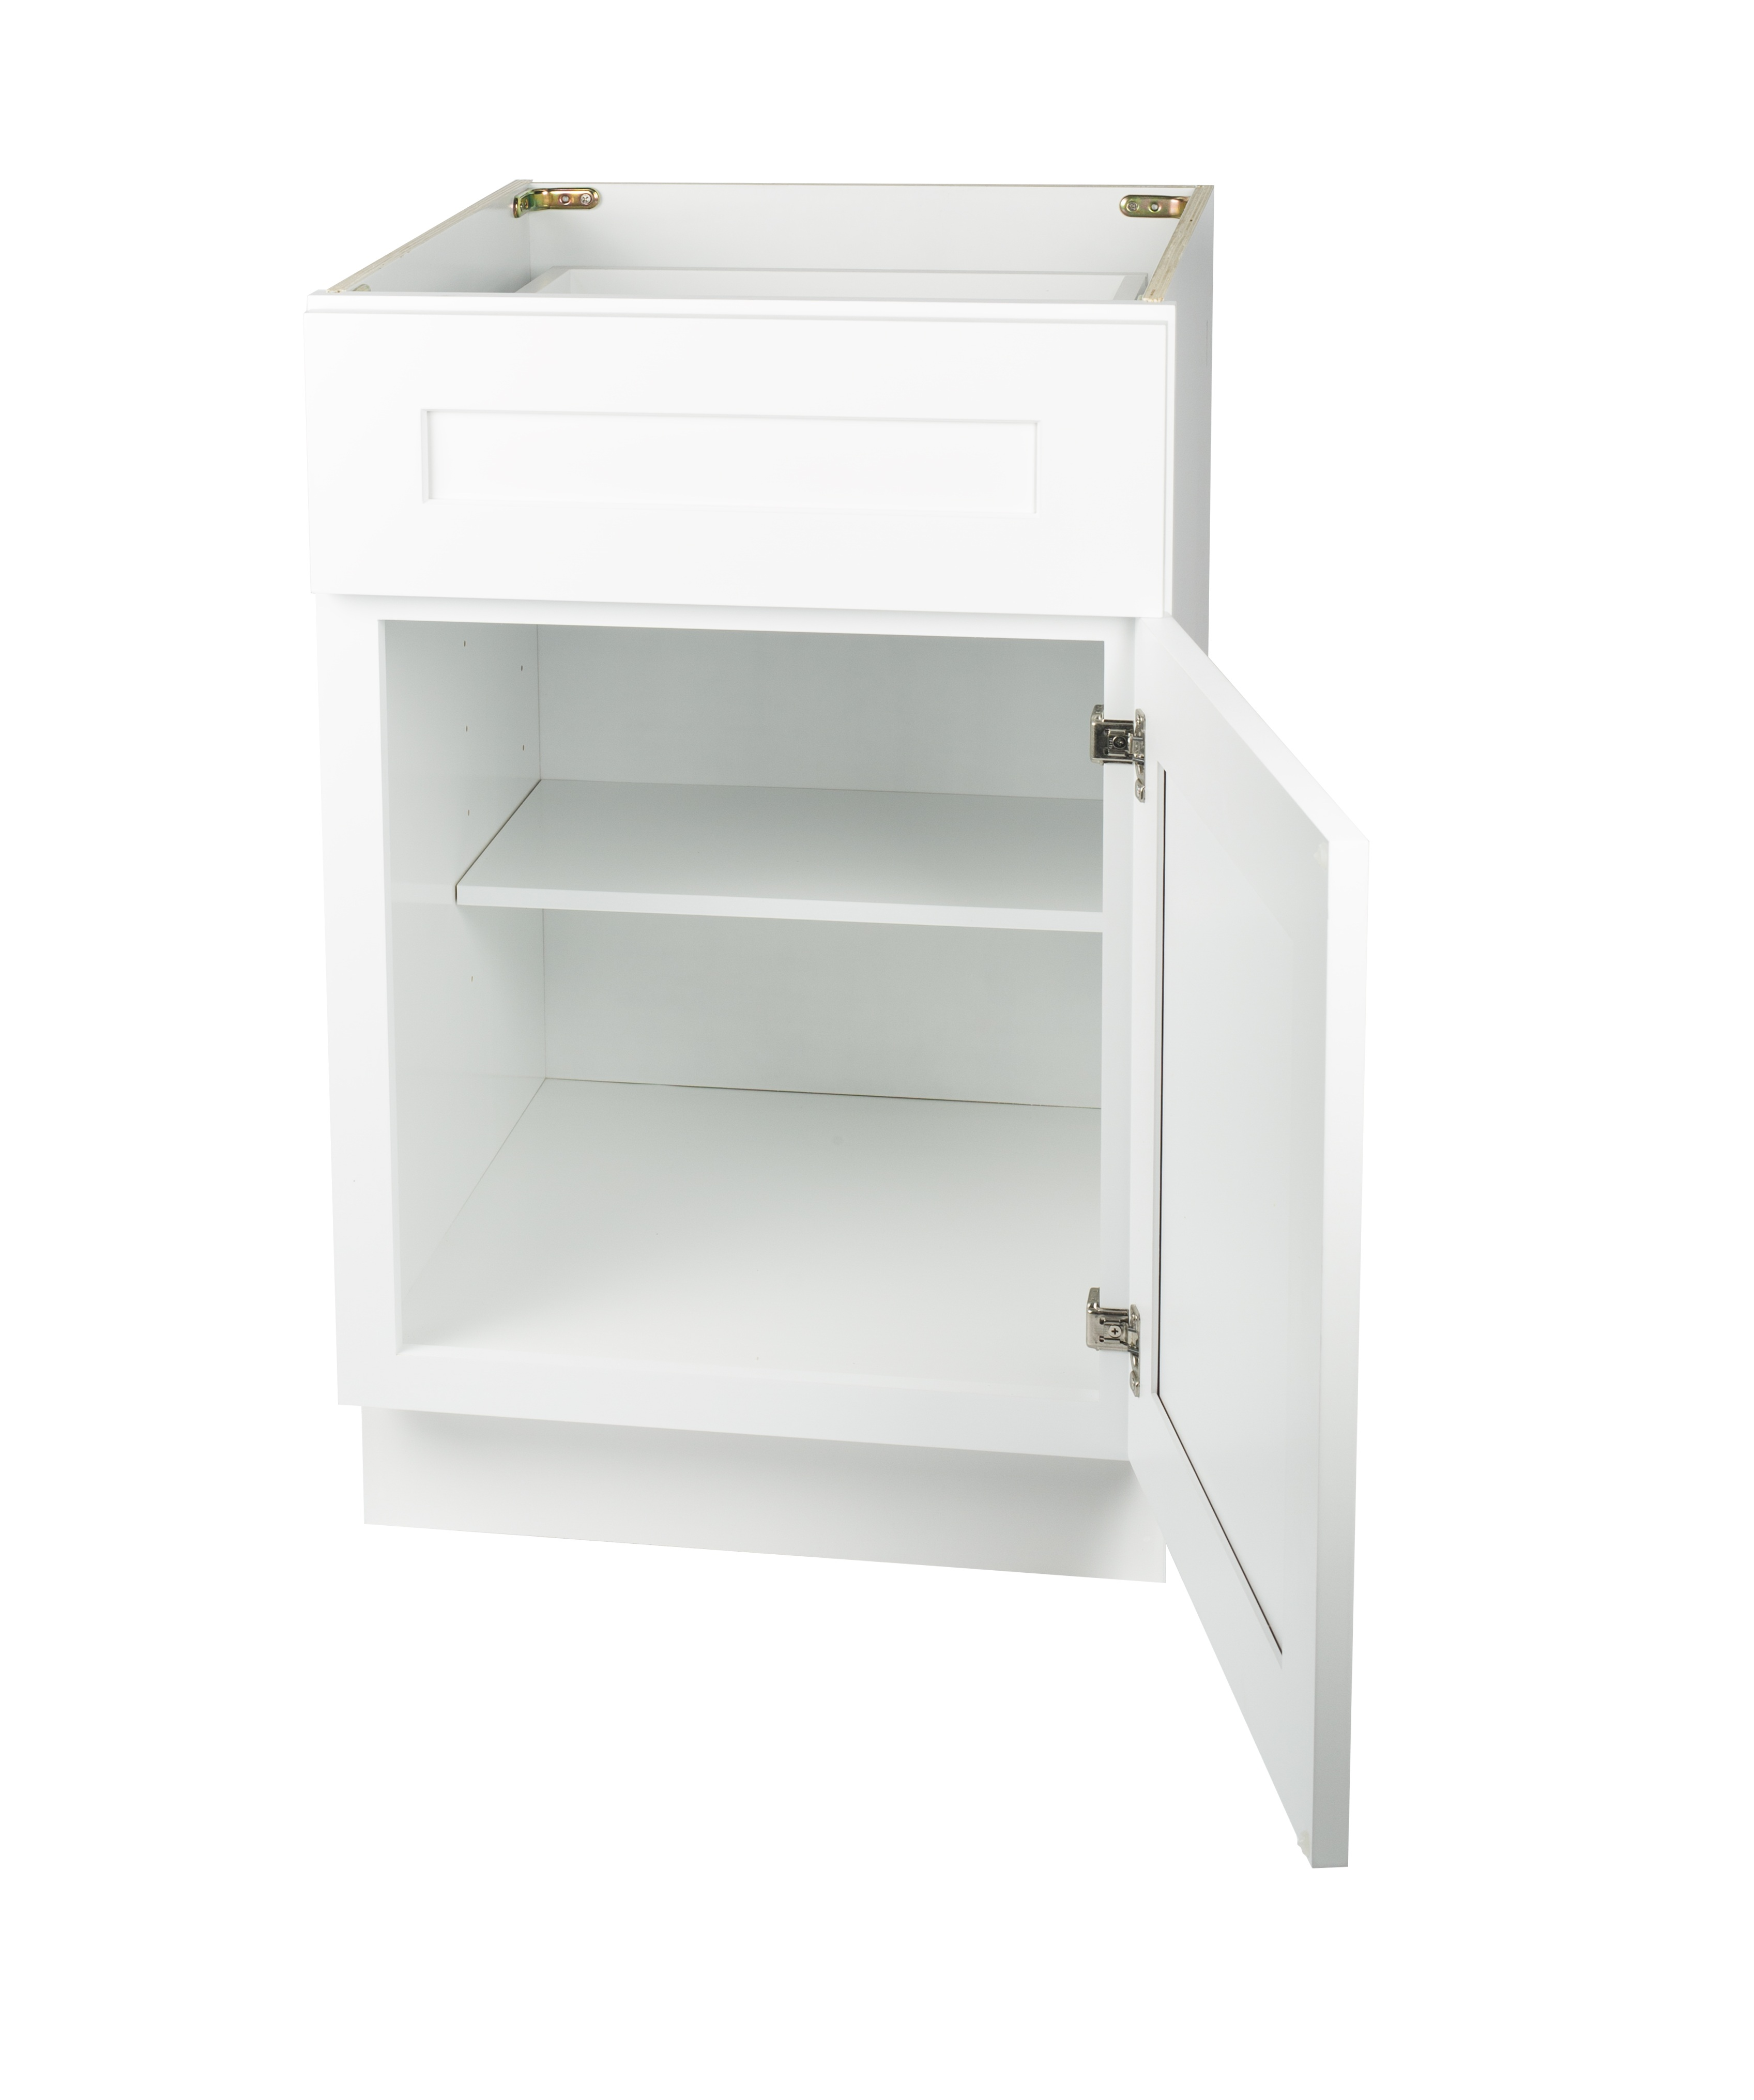 Ready to Assemble 9Wx34.5Hx24D in. Shaker Base Cabinet with 1 Door and 1 Drawer in White